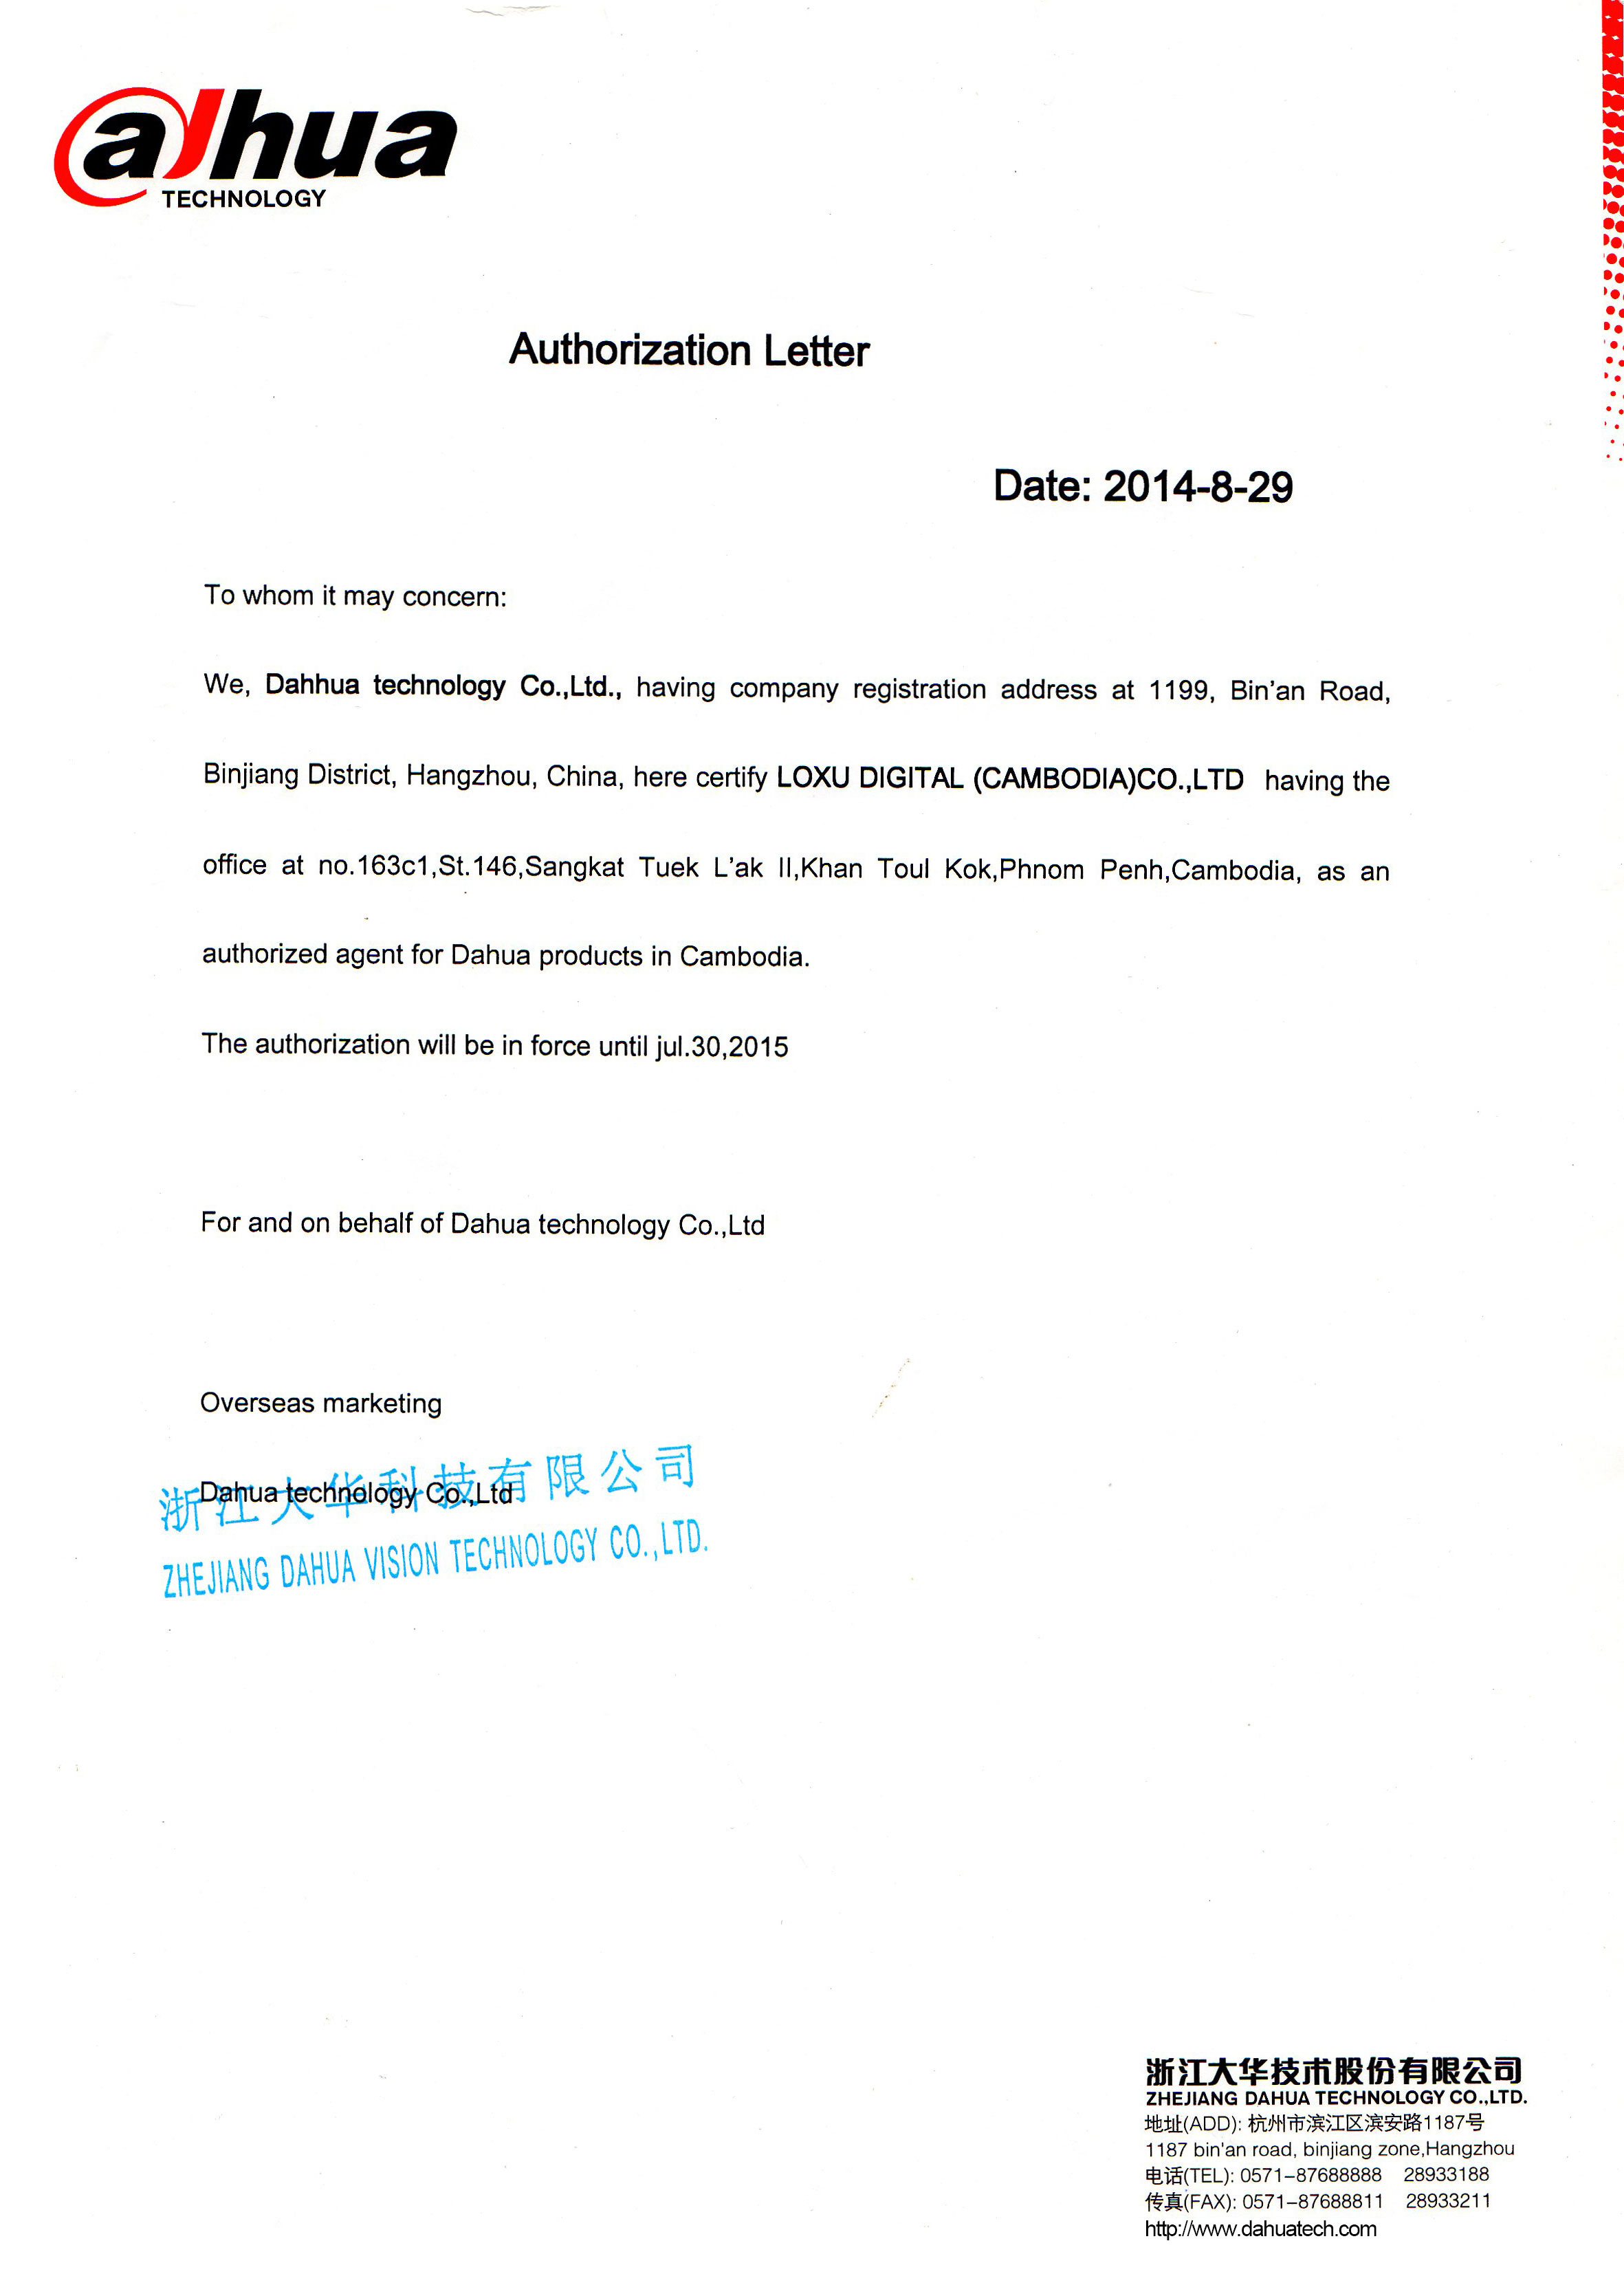 dahua technology authorization letter